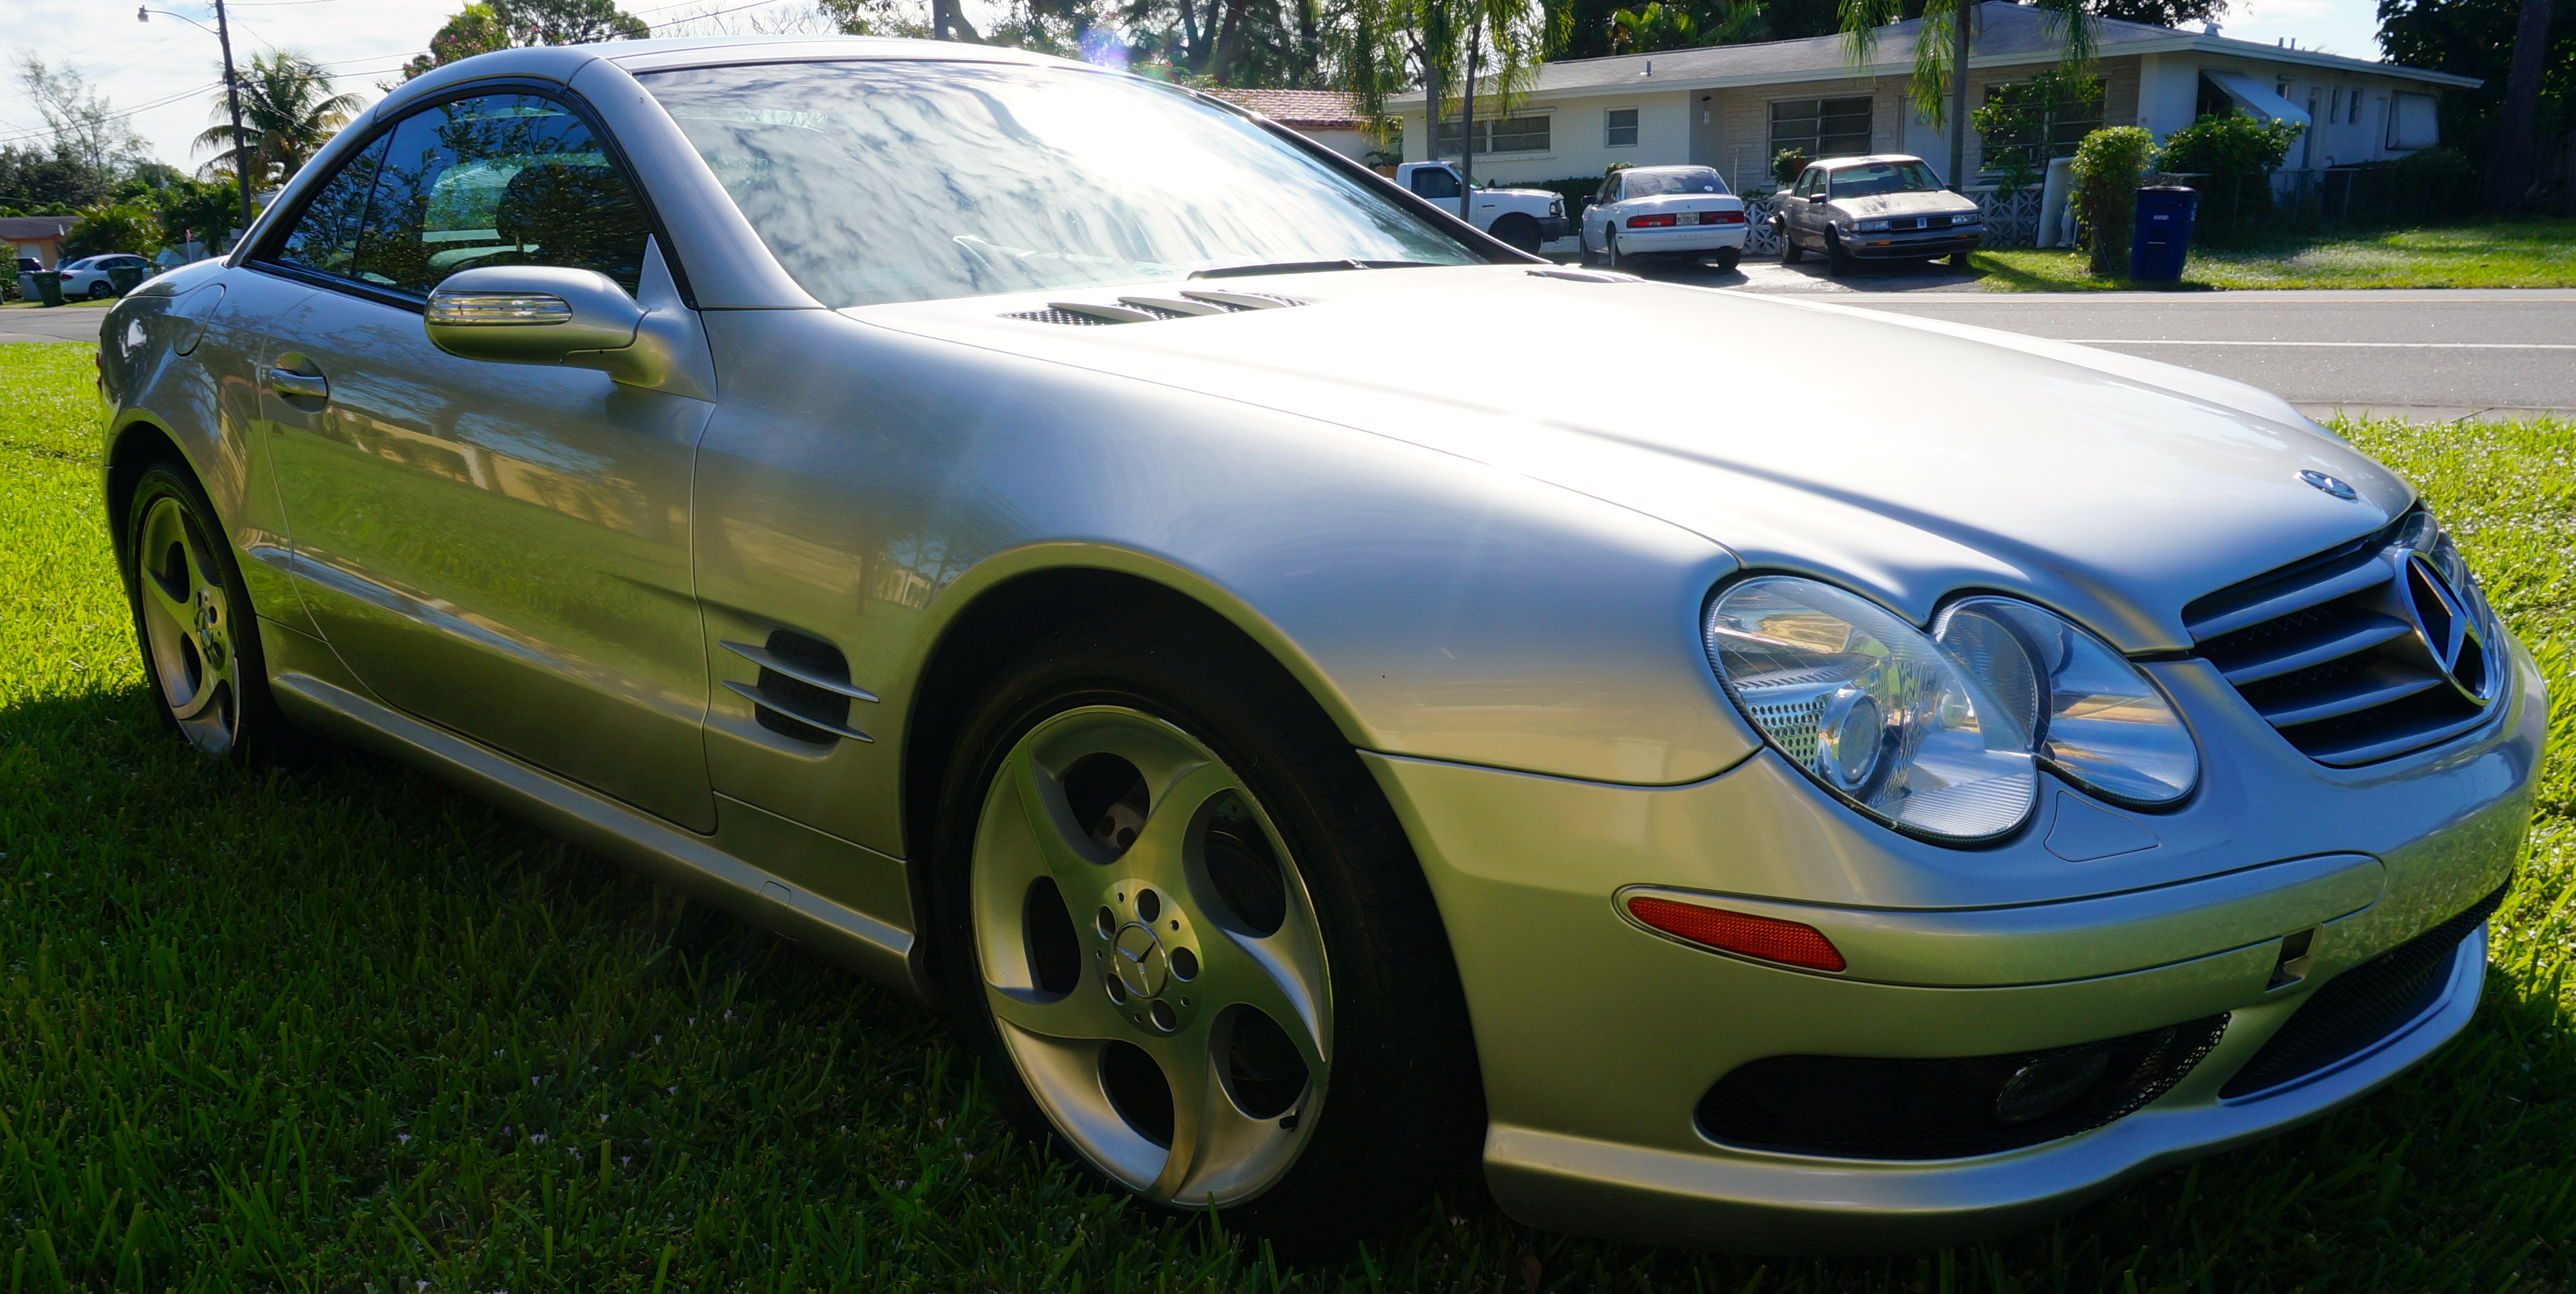 Buy Used Cars Cheap